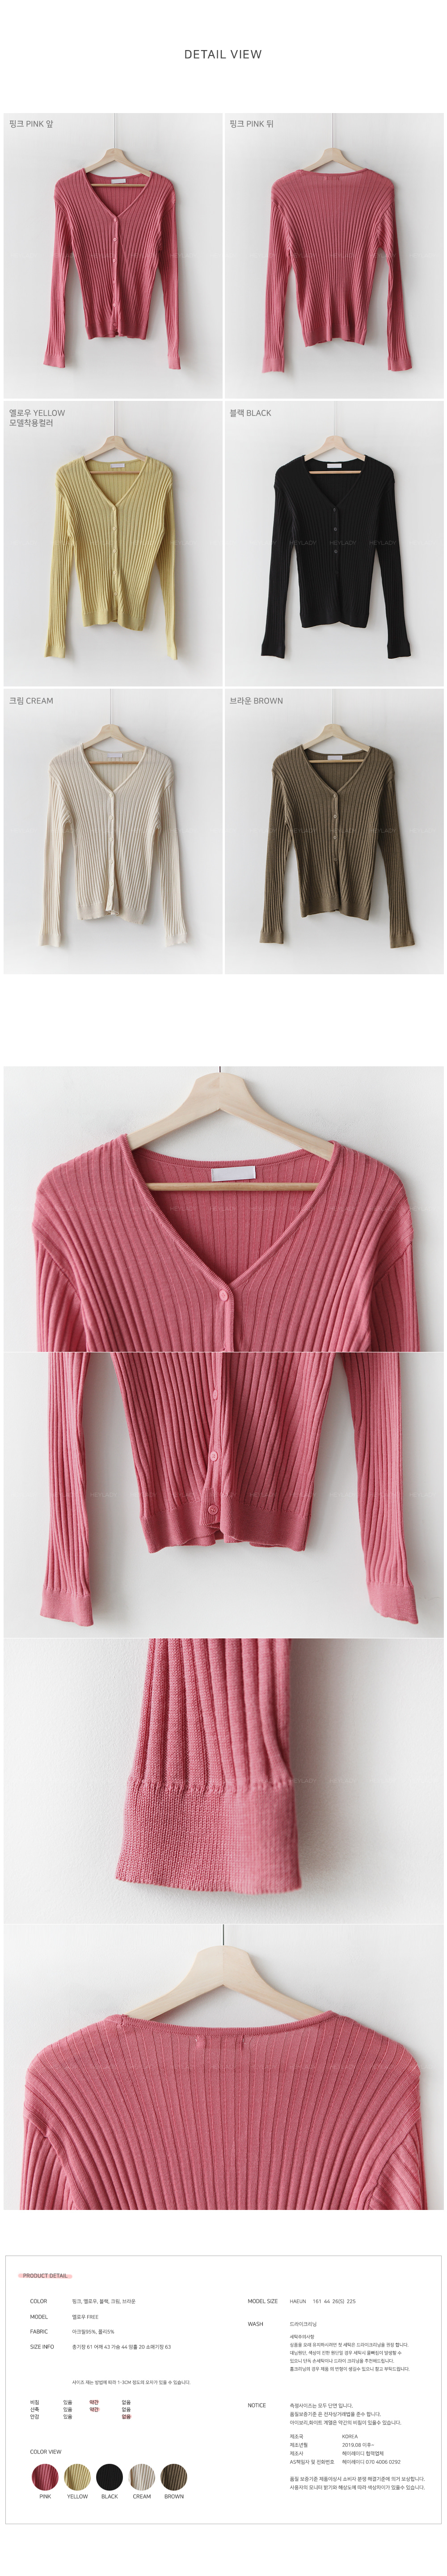 Nelly Ribbed Knit Cardigan